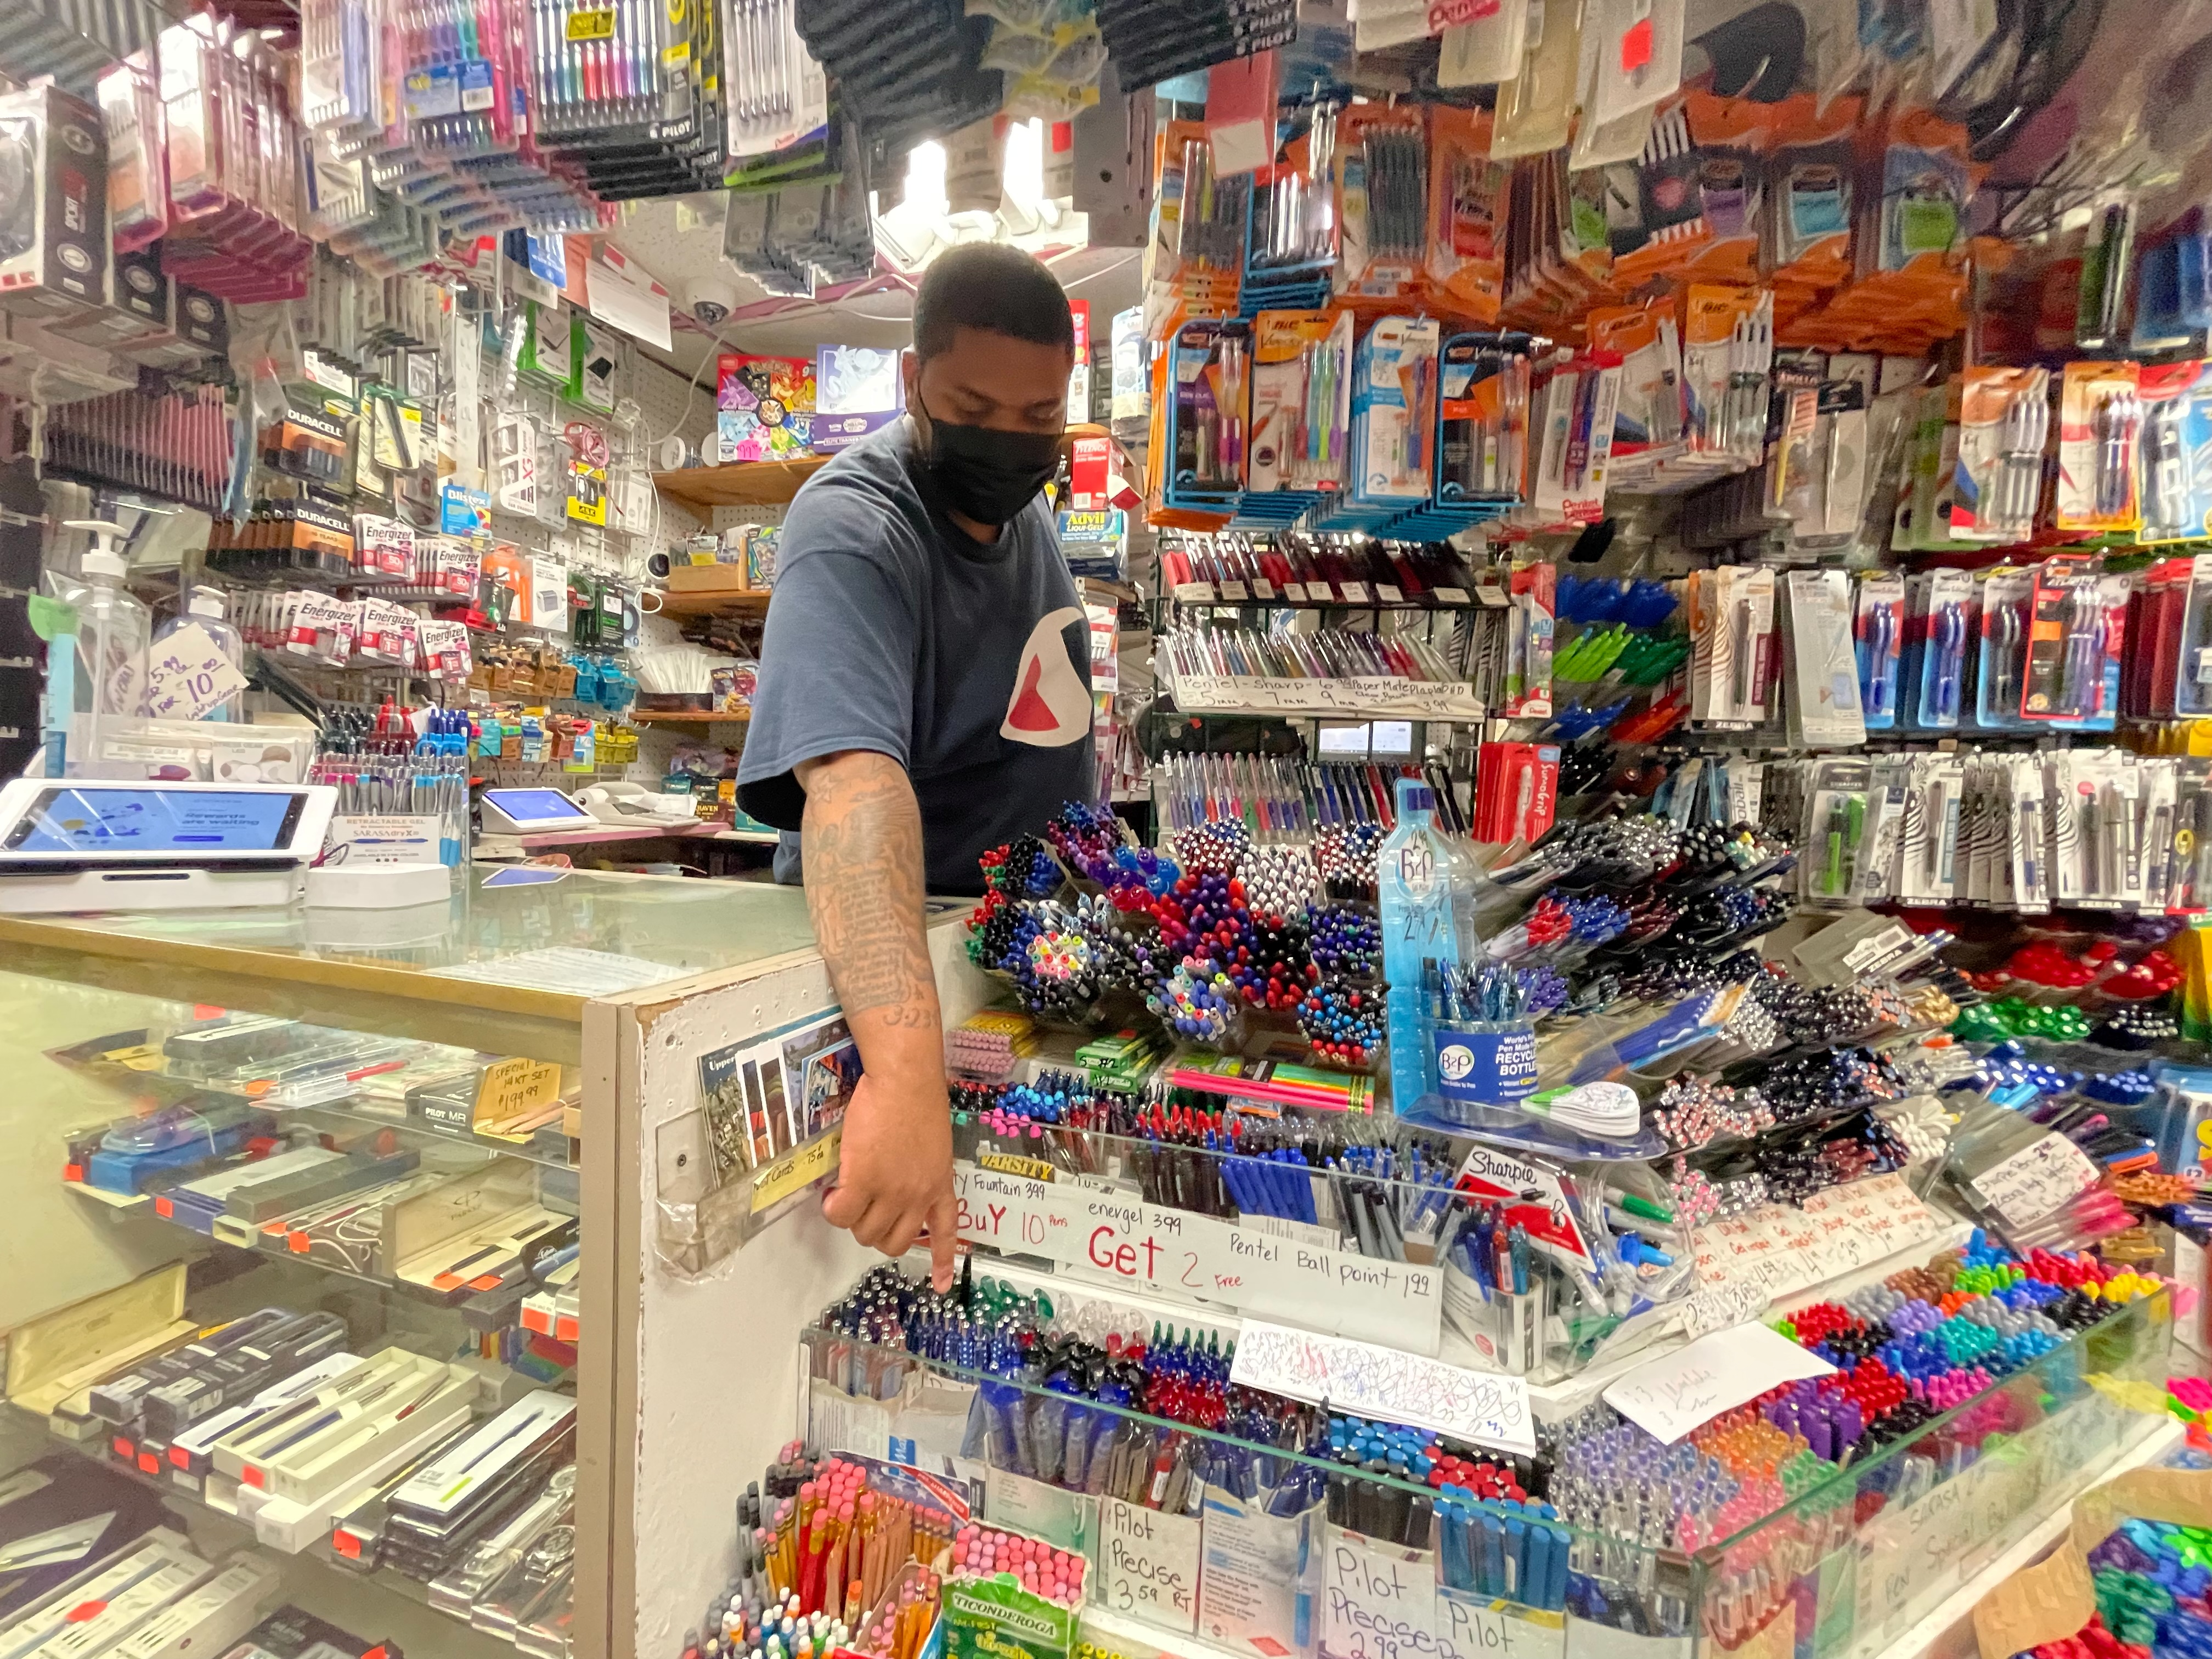 Staff member points to supplies on display at Stationery and Toy World in New York City, U.S., ahead of back-to-school season, July 21, 2021.REUTERS/Joyce Philippe